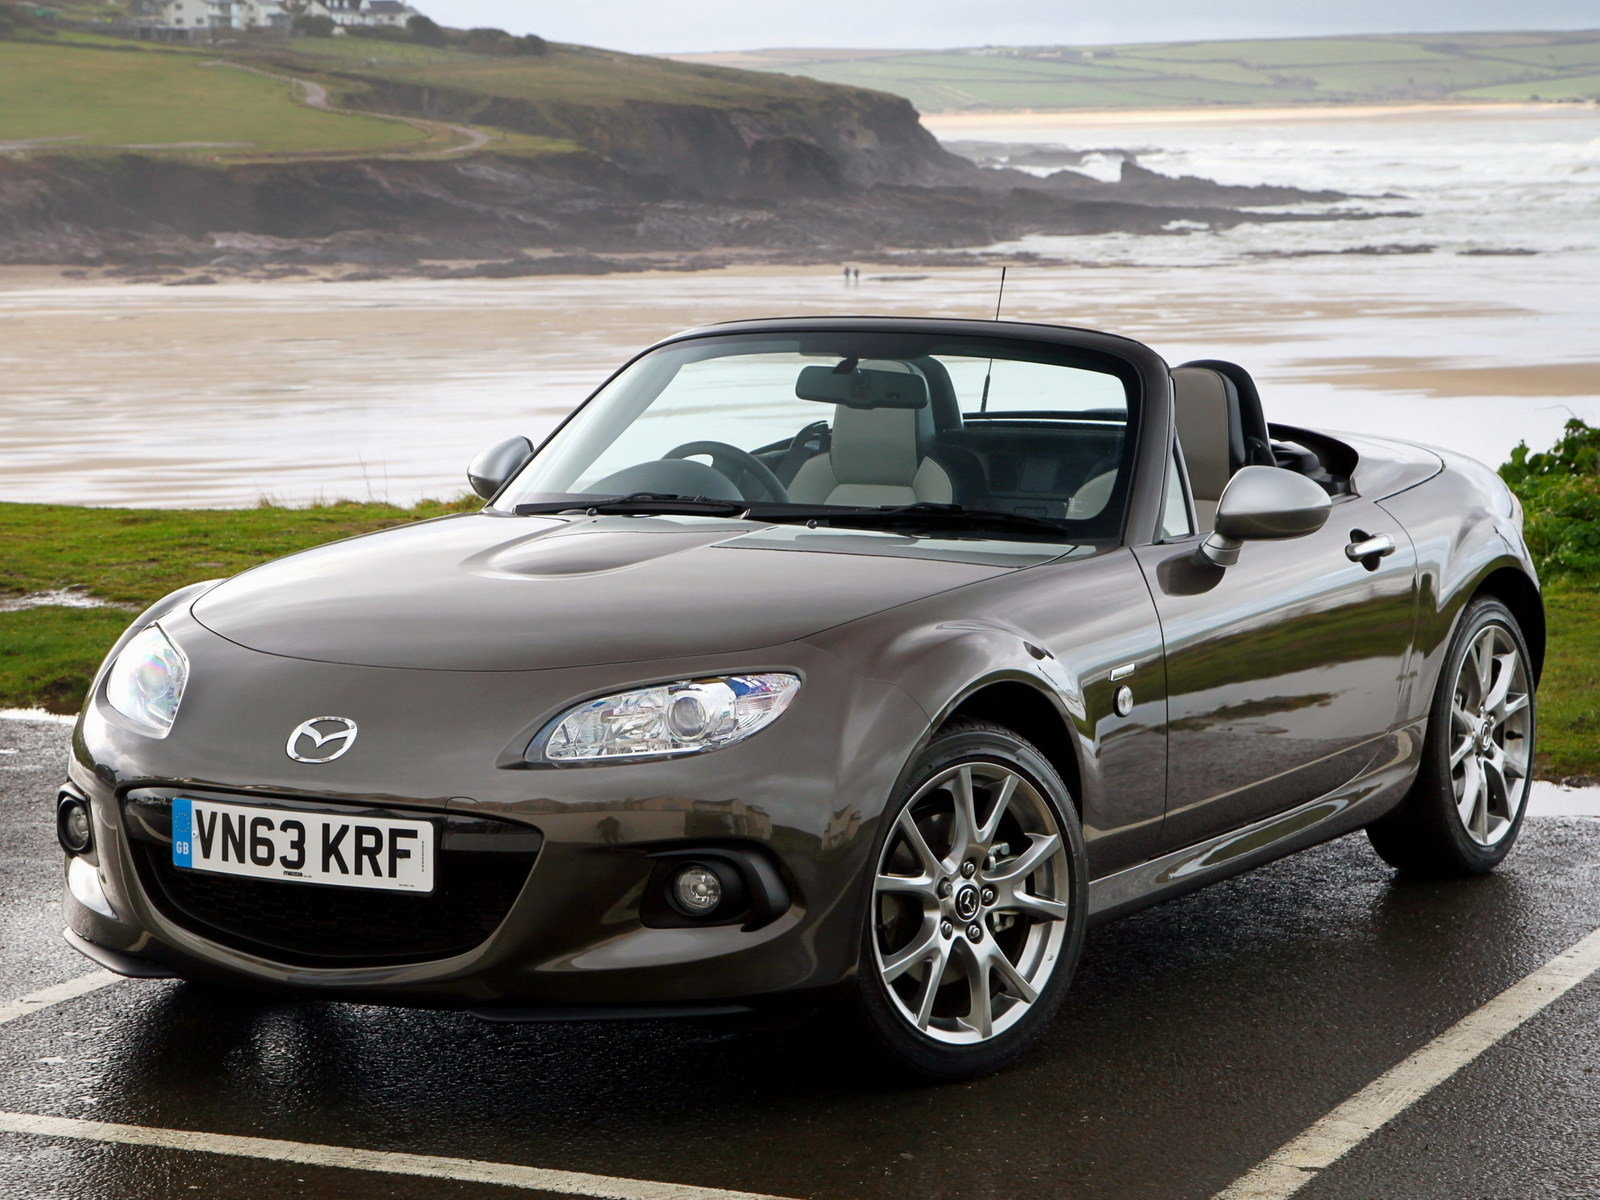 2014 mazda mx 5 sport venture picture 541671 car review top speed. Black Bedroom Furniture Sets. Home Design Ideas